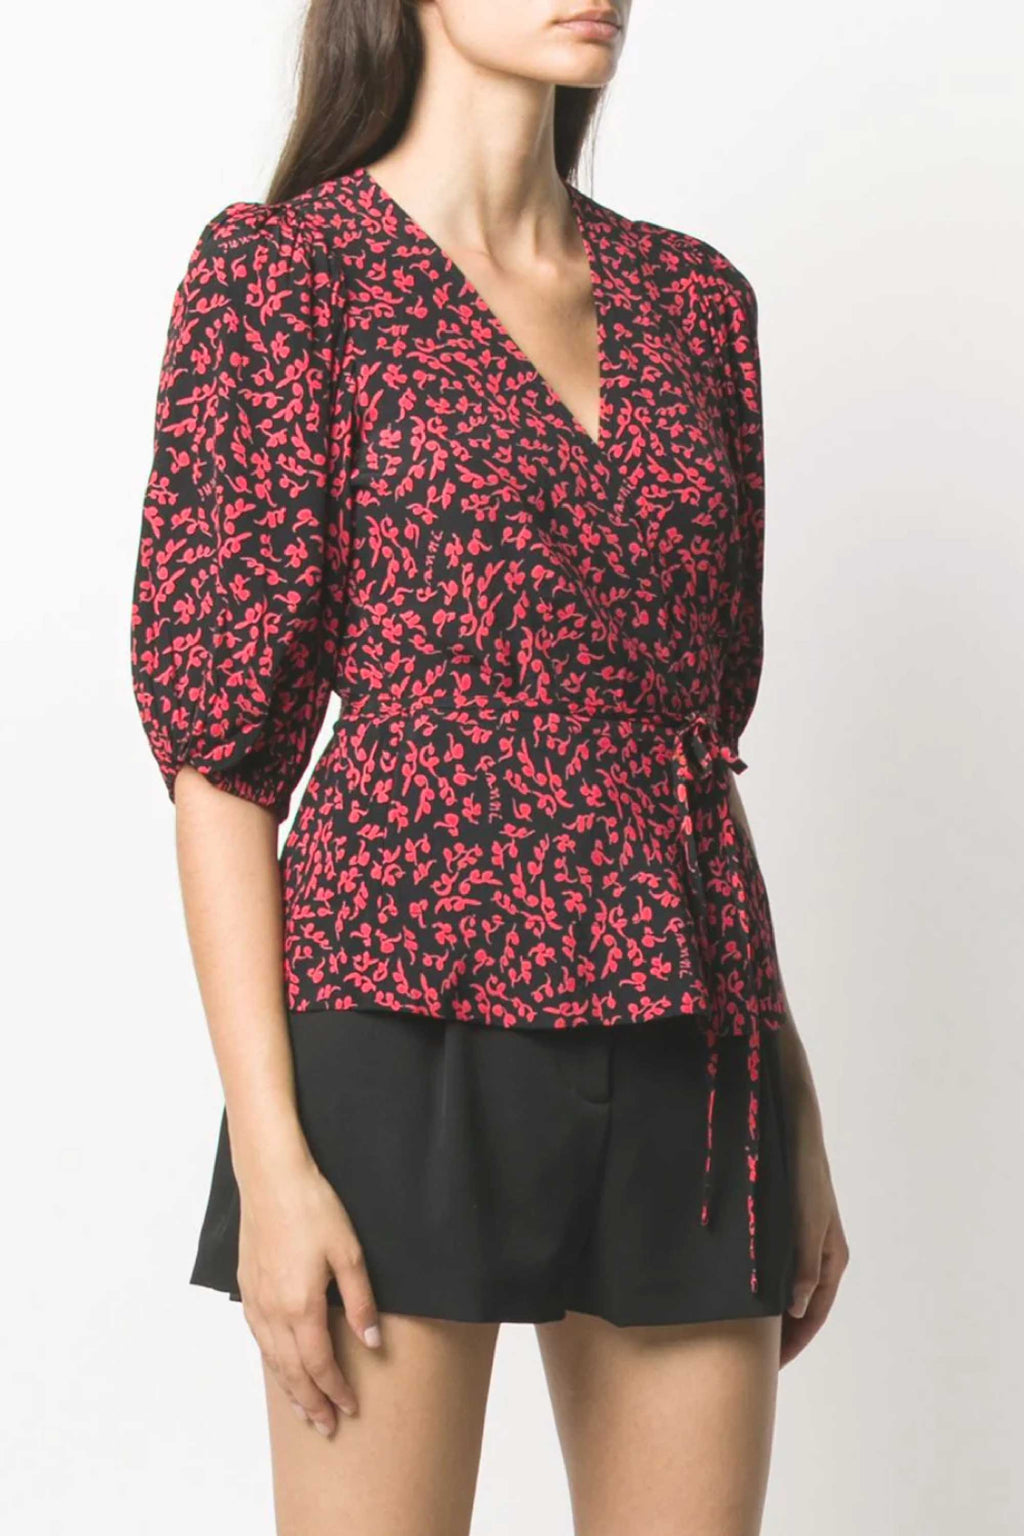 FLORAL WRAP BLOUSE - BLACK / RED